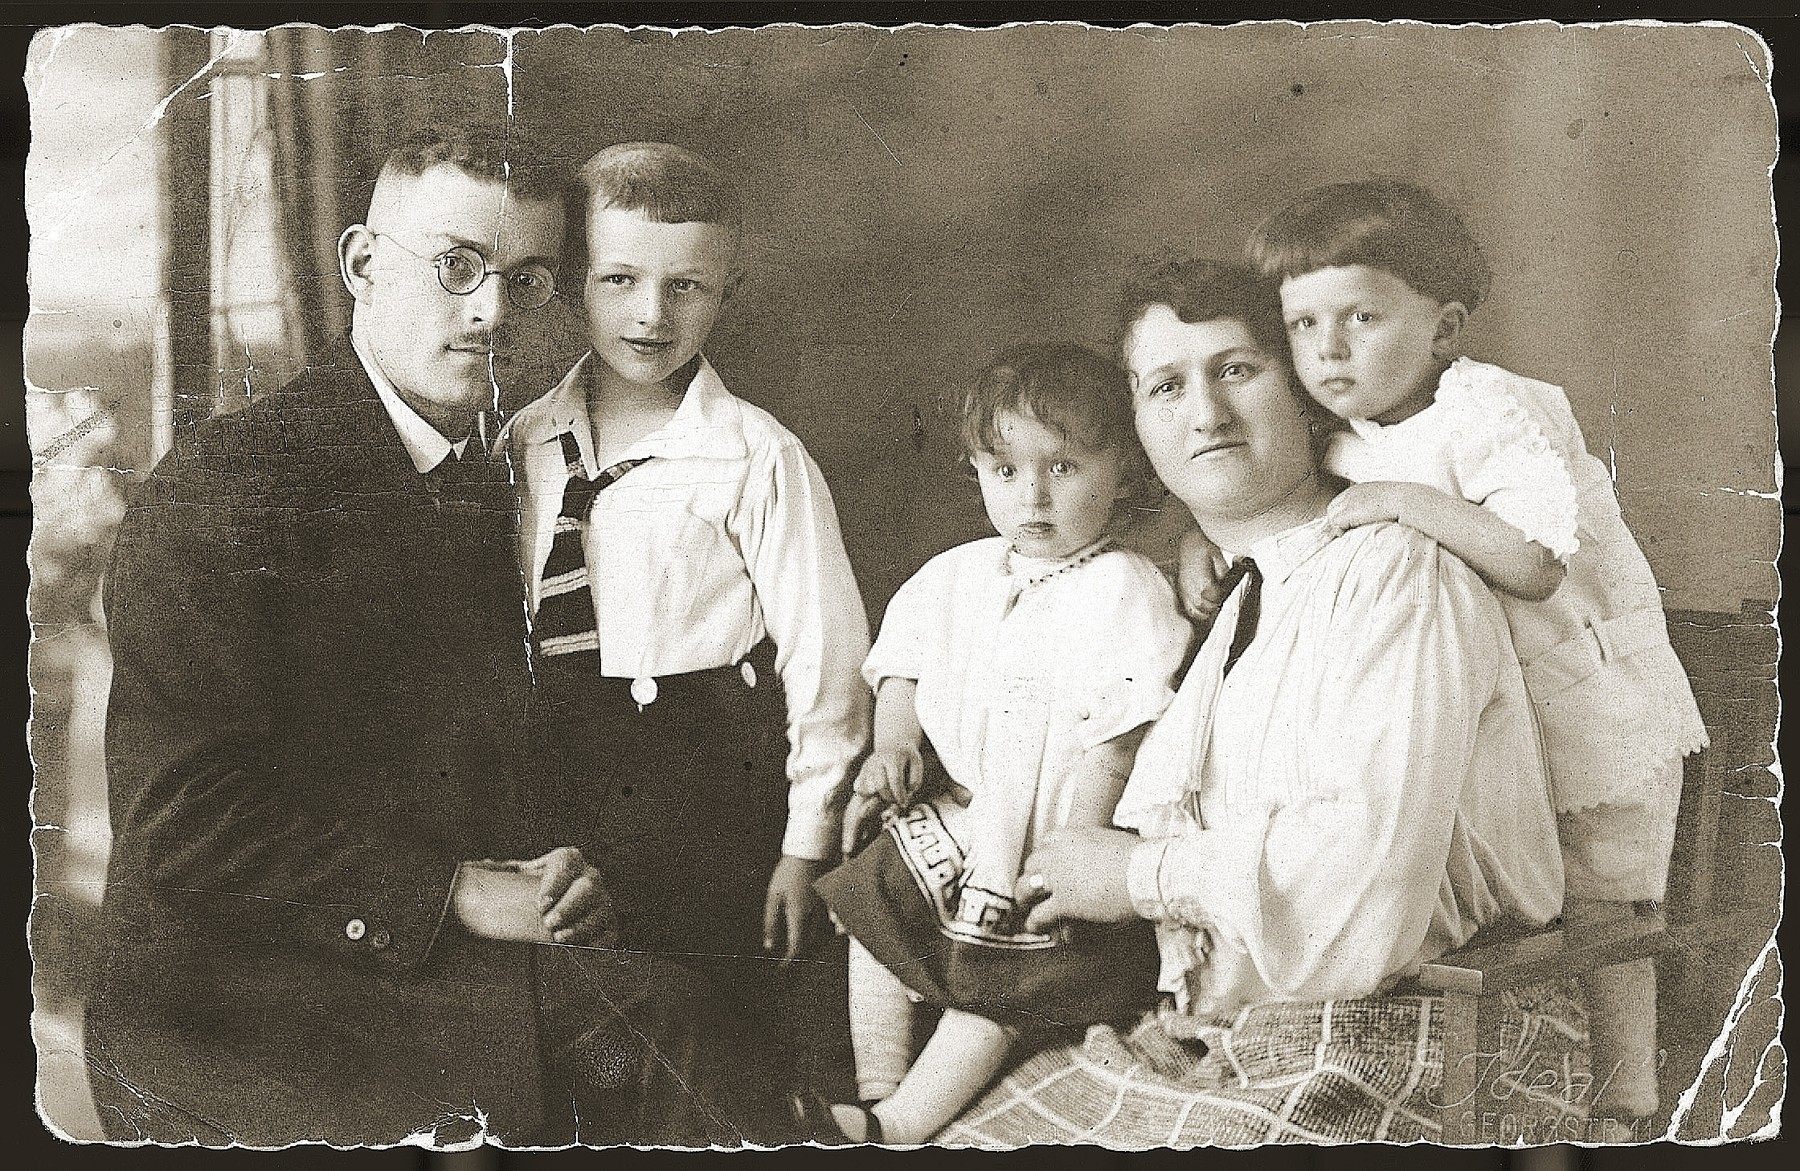 Portrait of the Gruengras family.    Pictured from left to right are: Nachman, Josef David, Frieda, Ester and Isidor Gruengras.